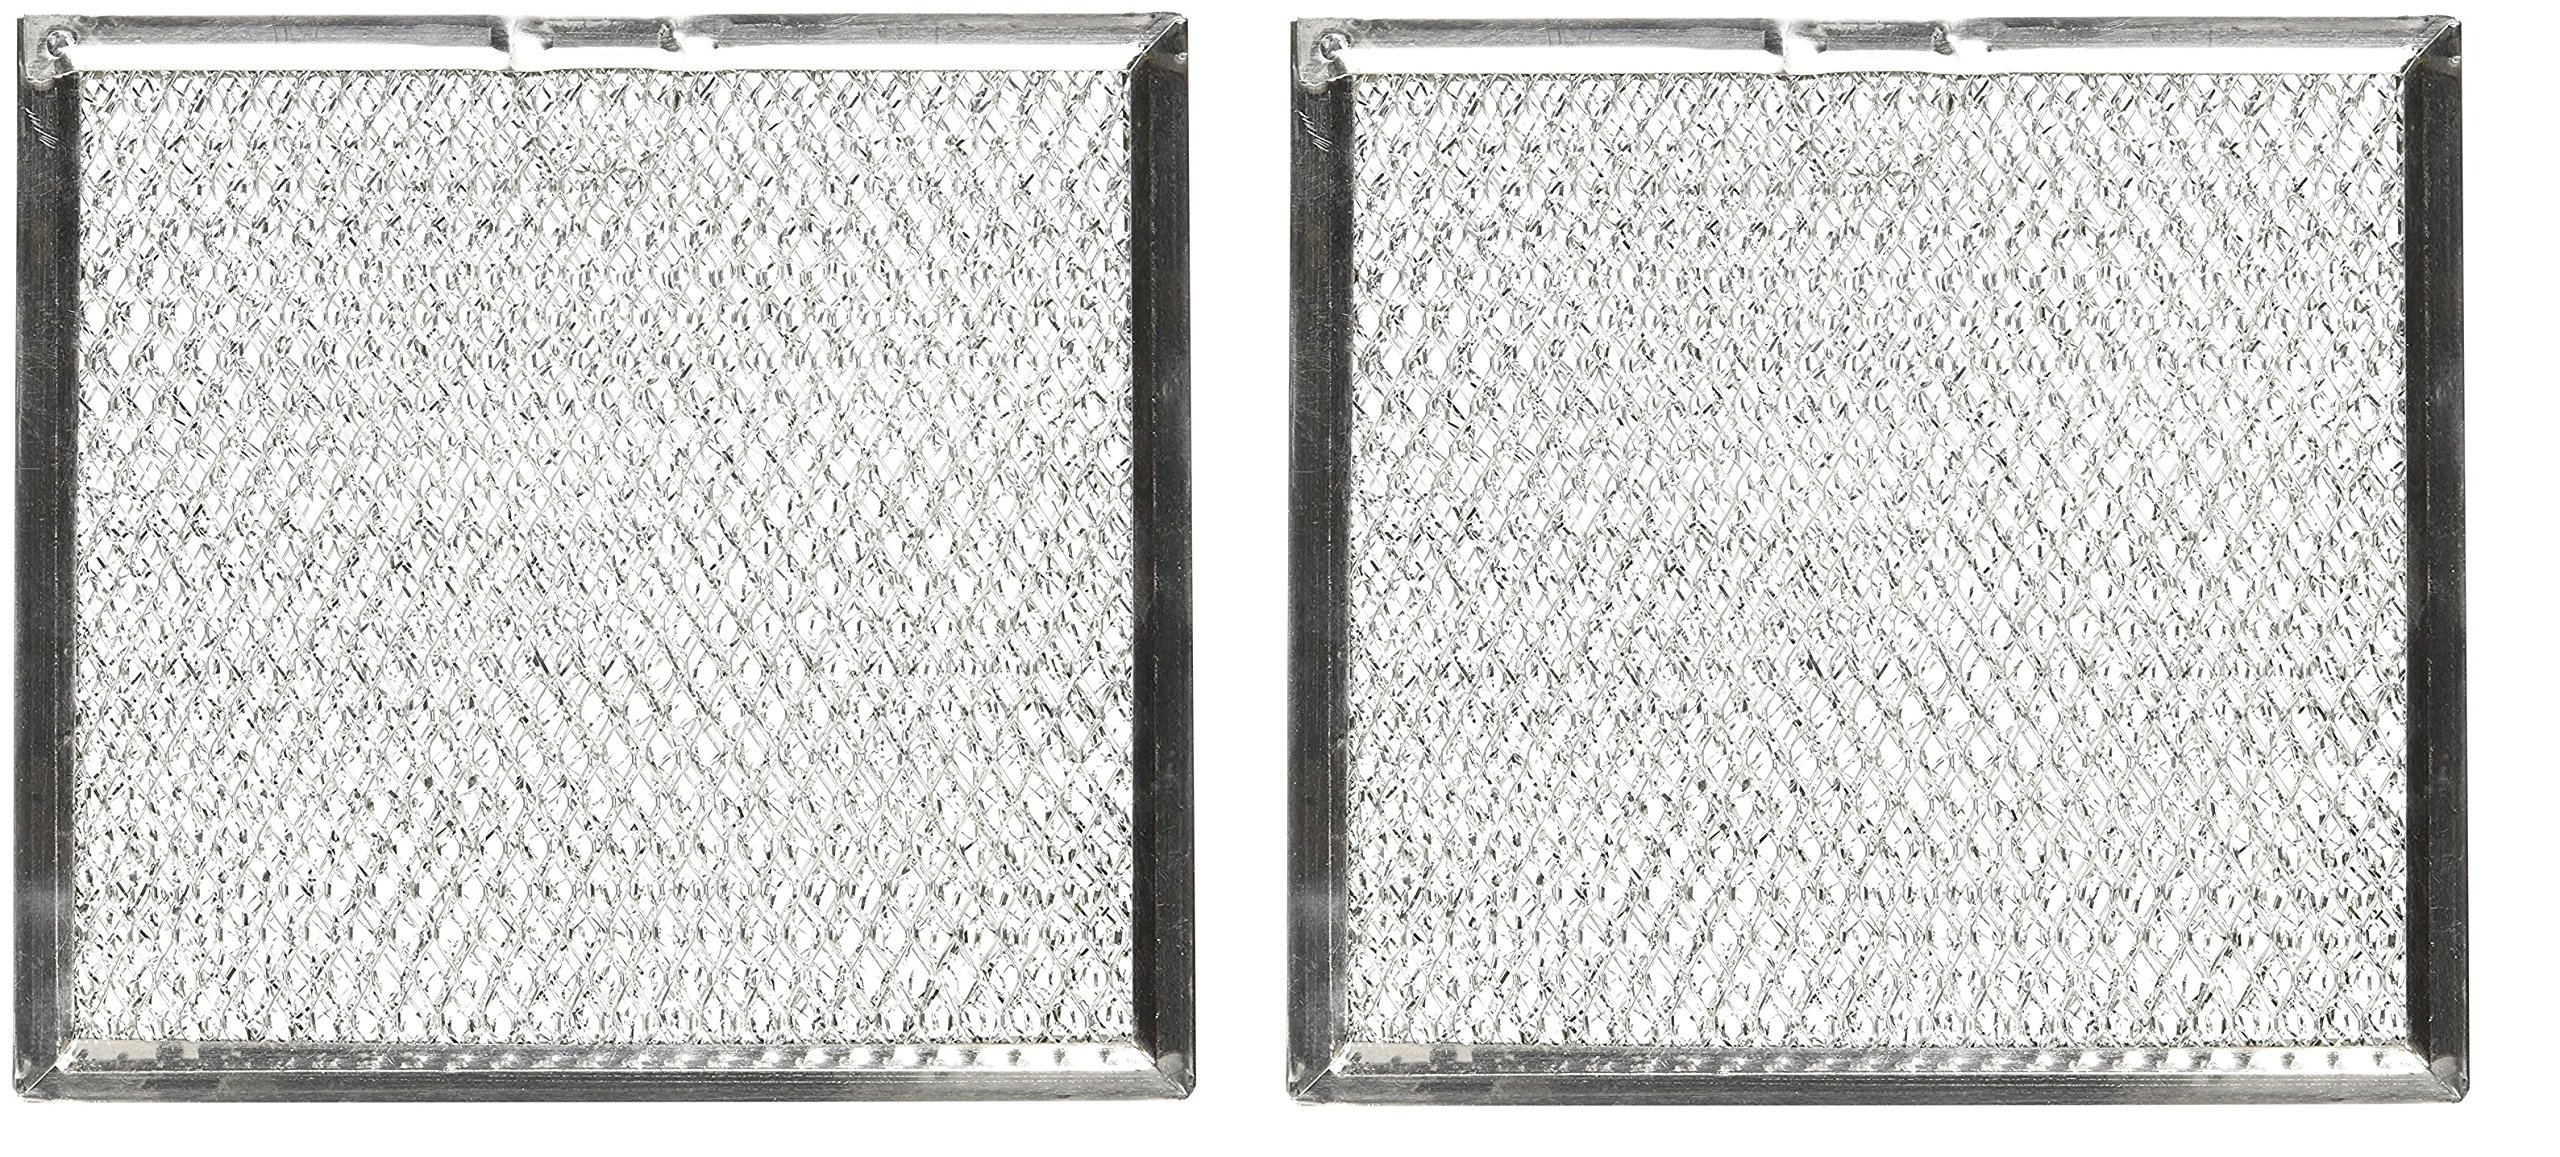 2 PACK AP5306190 Samsung Aluminum Mesh Grease Filter Replacements